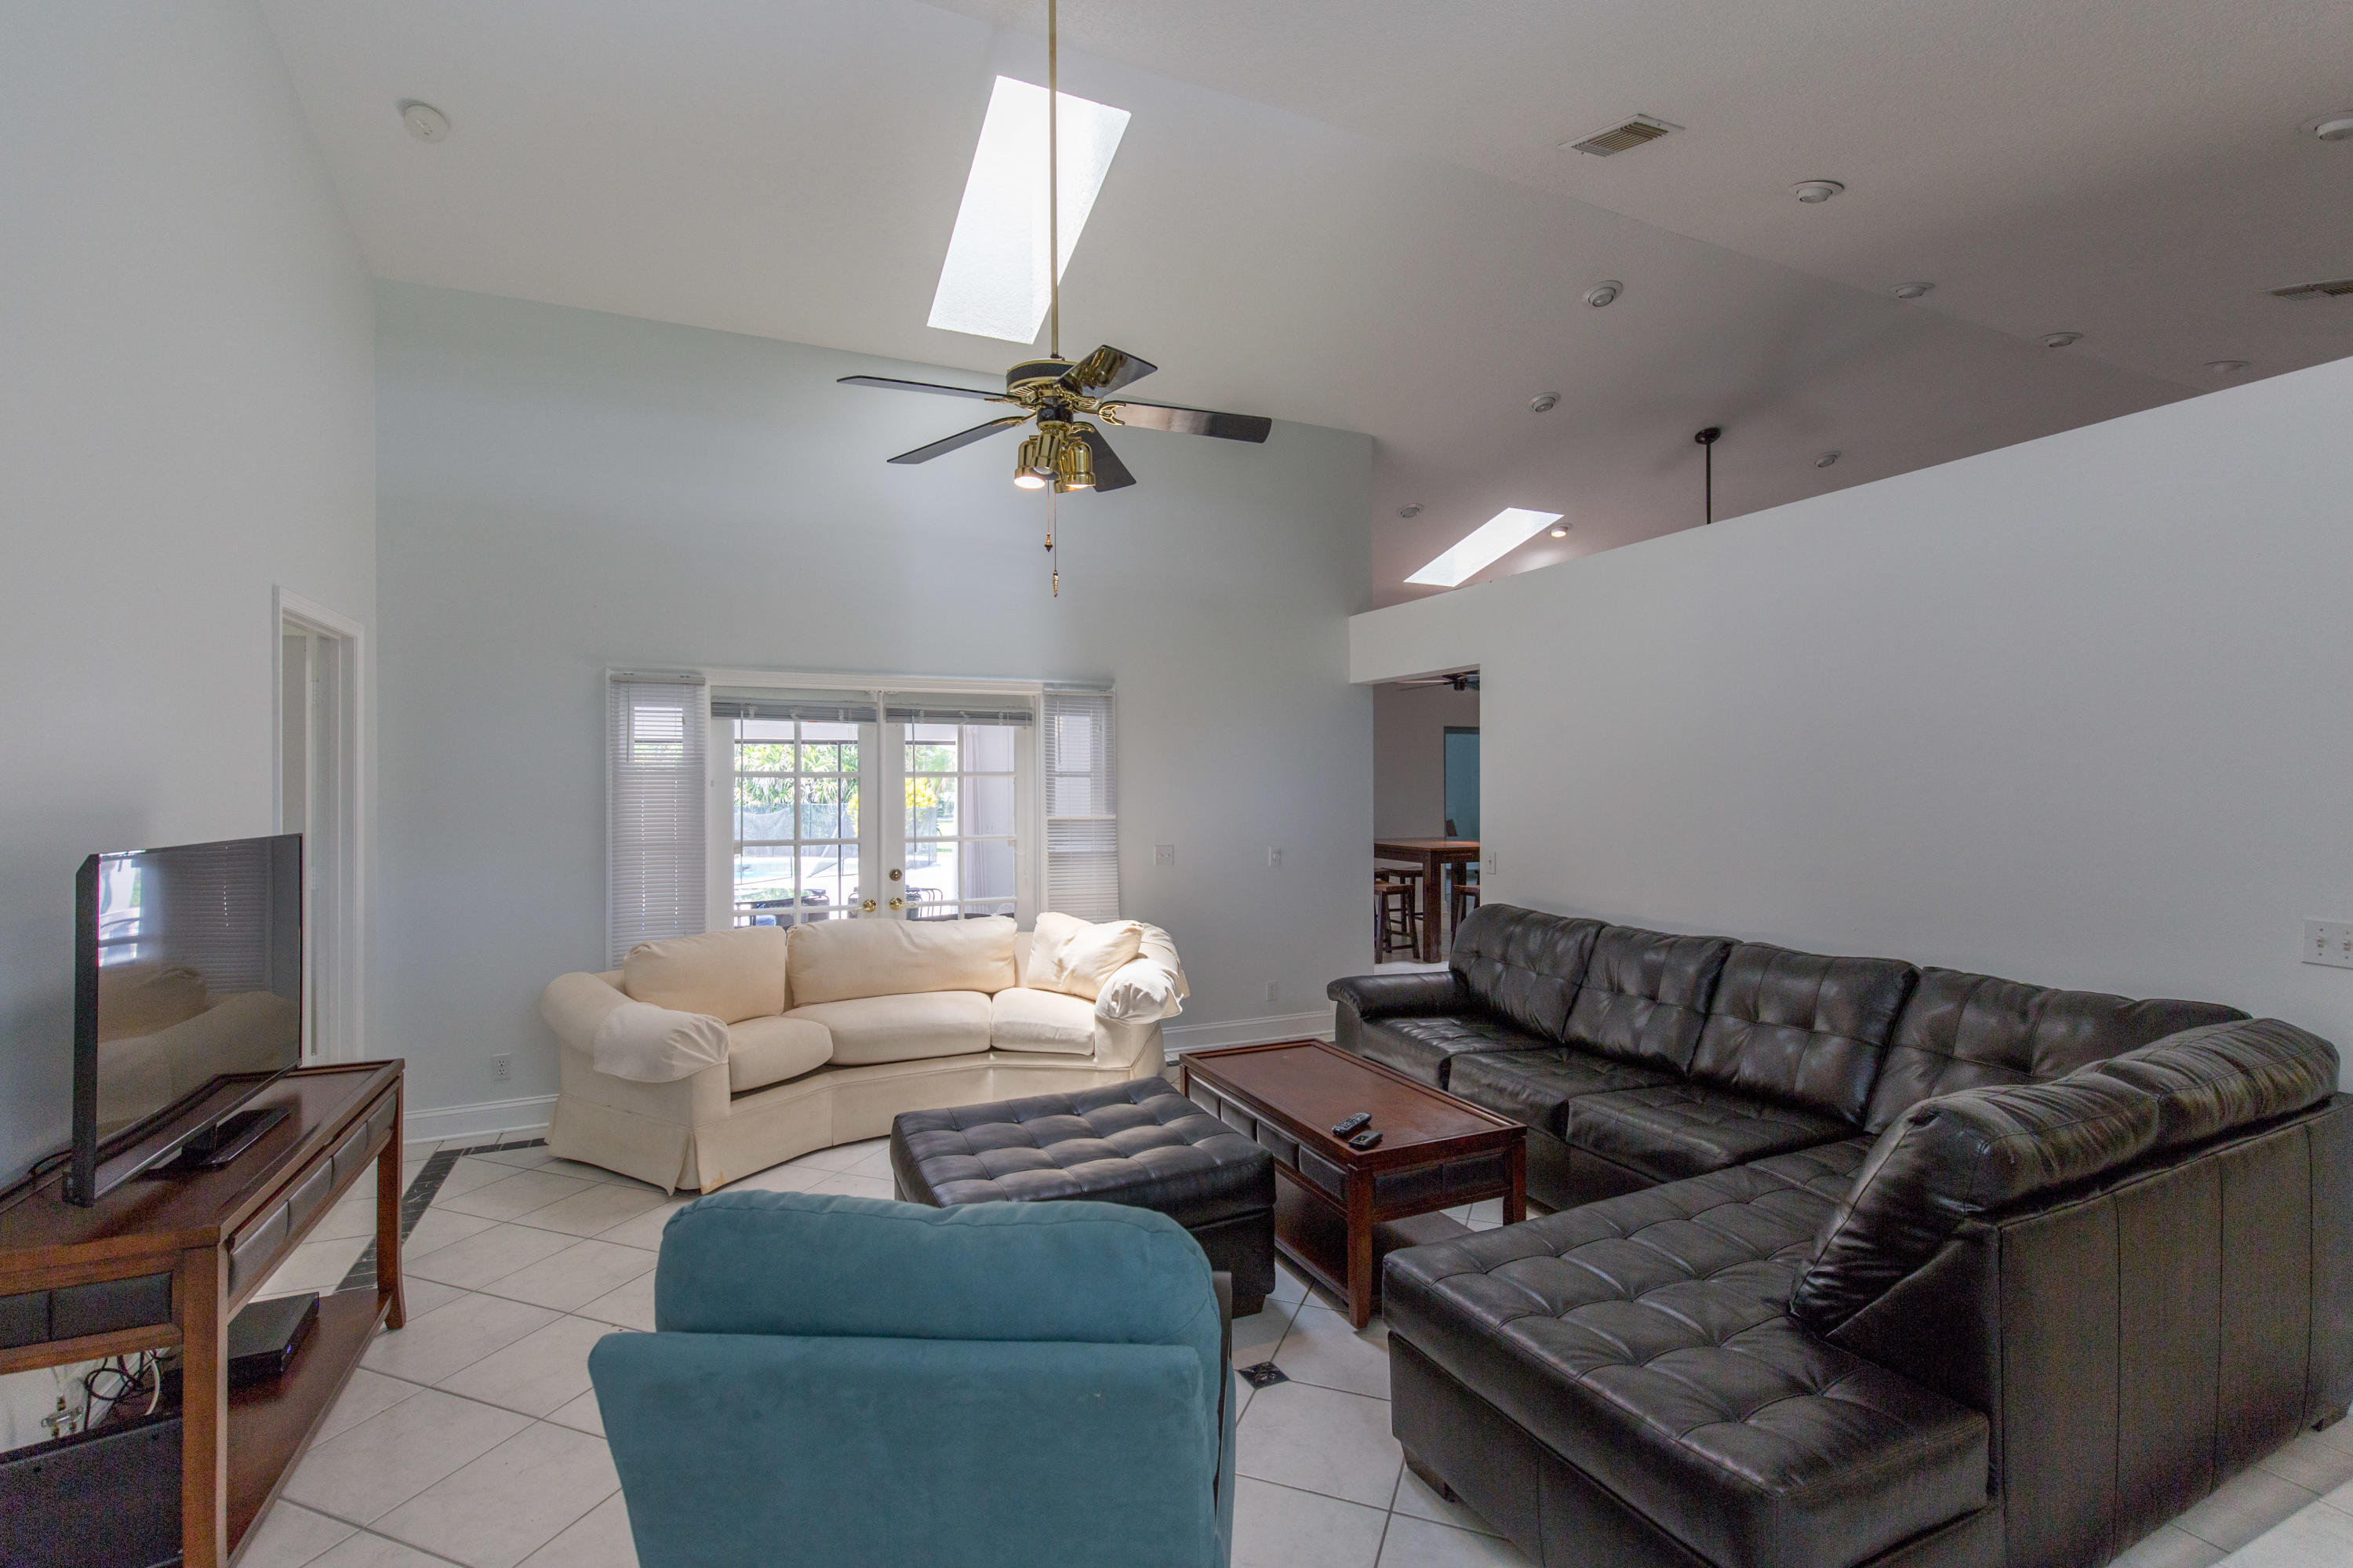 Living Area and Patio